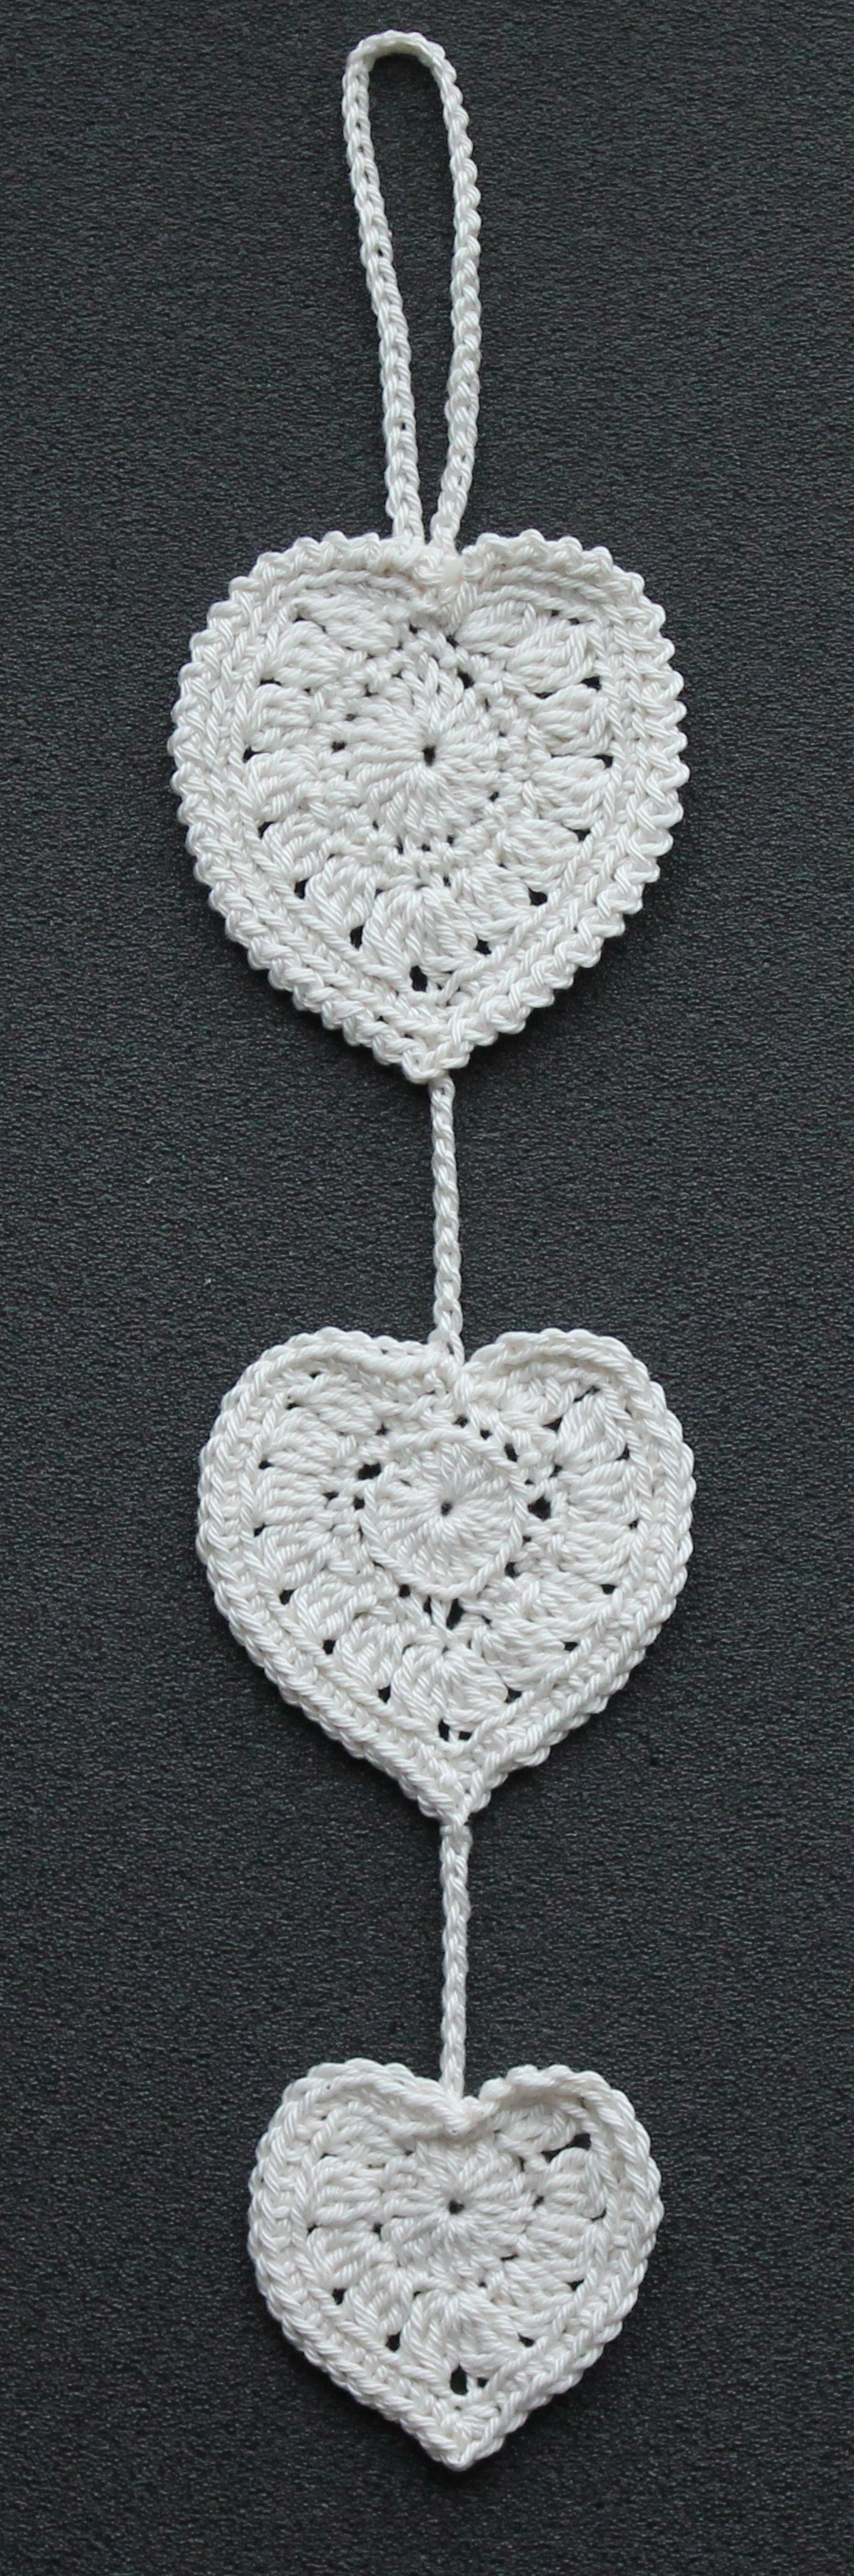 trio of hearts crochet